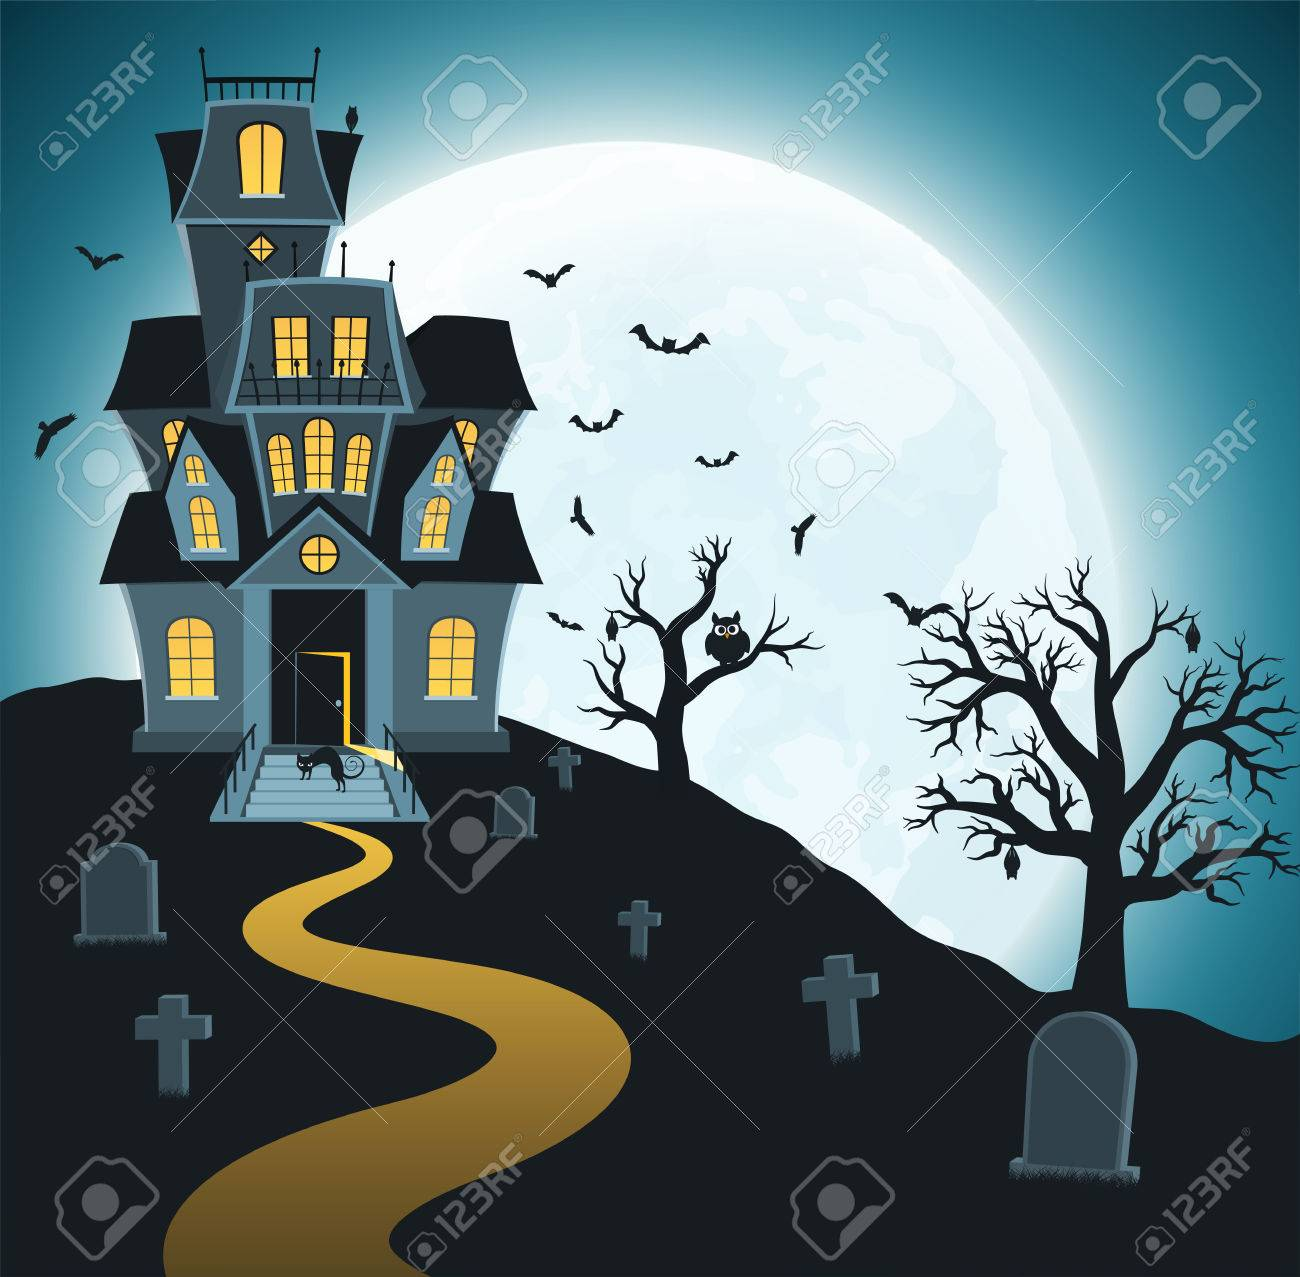 Free Haunted Images